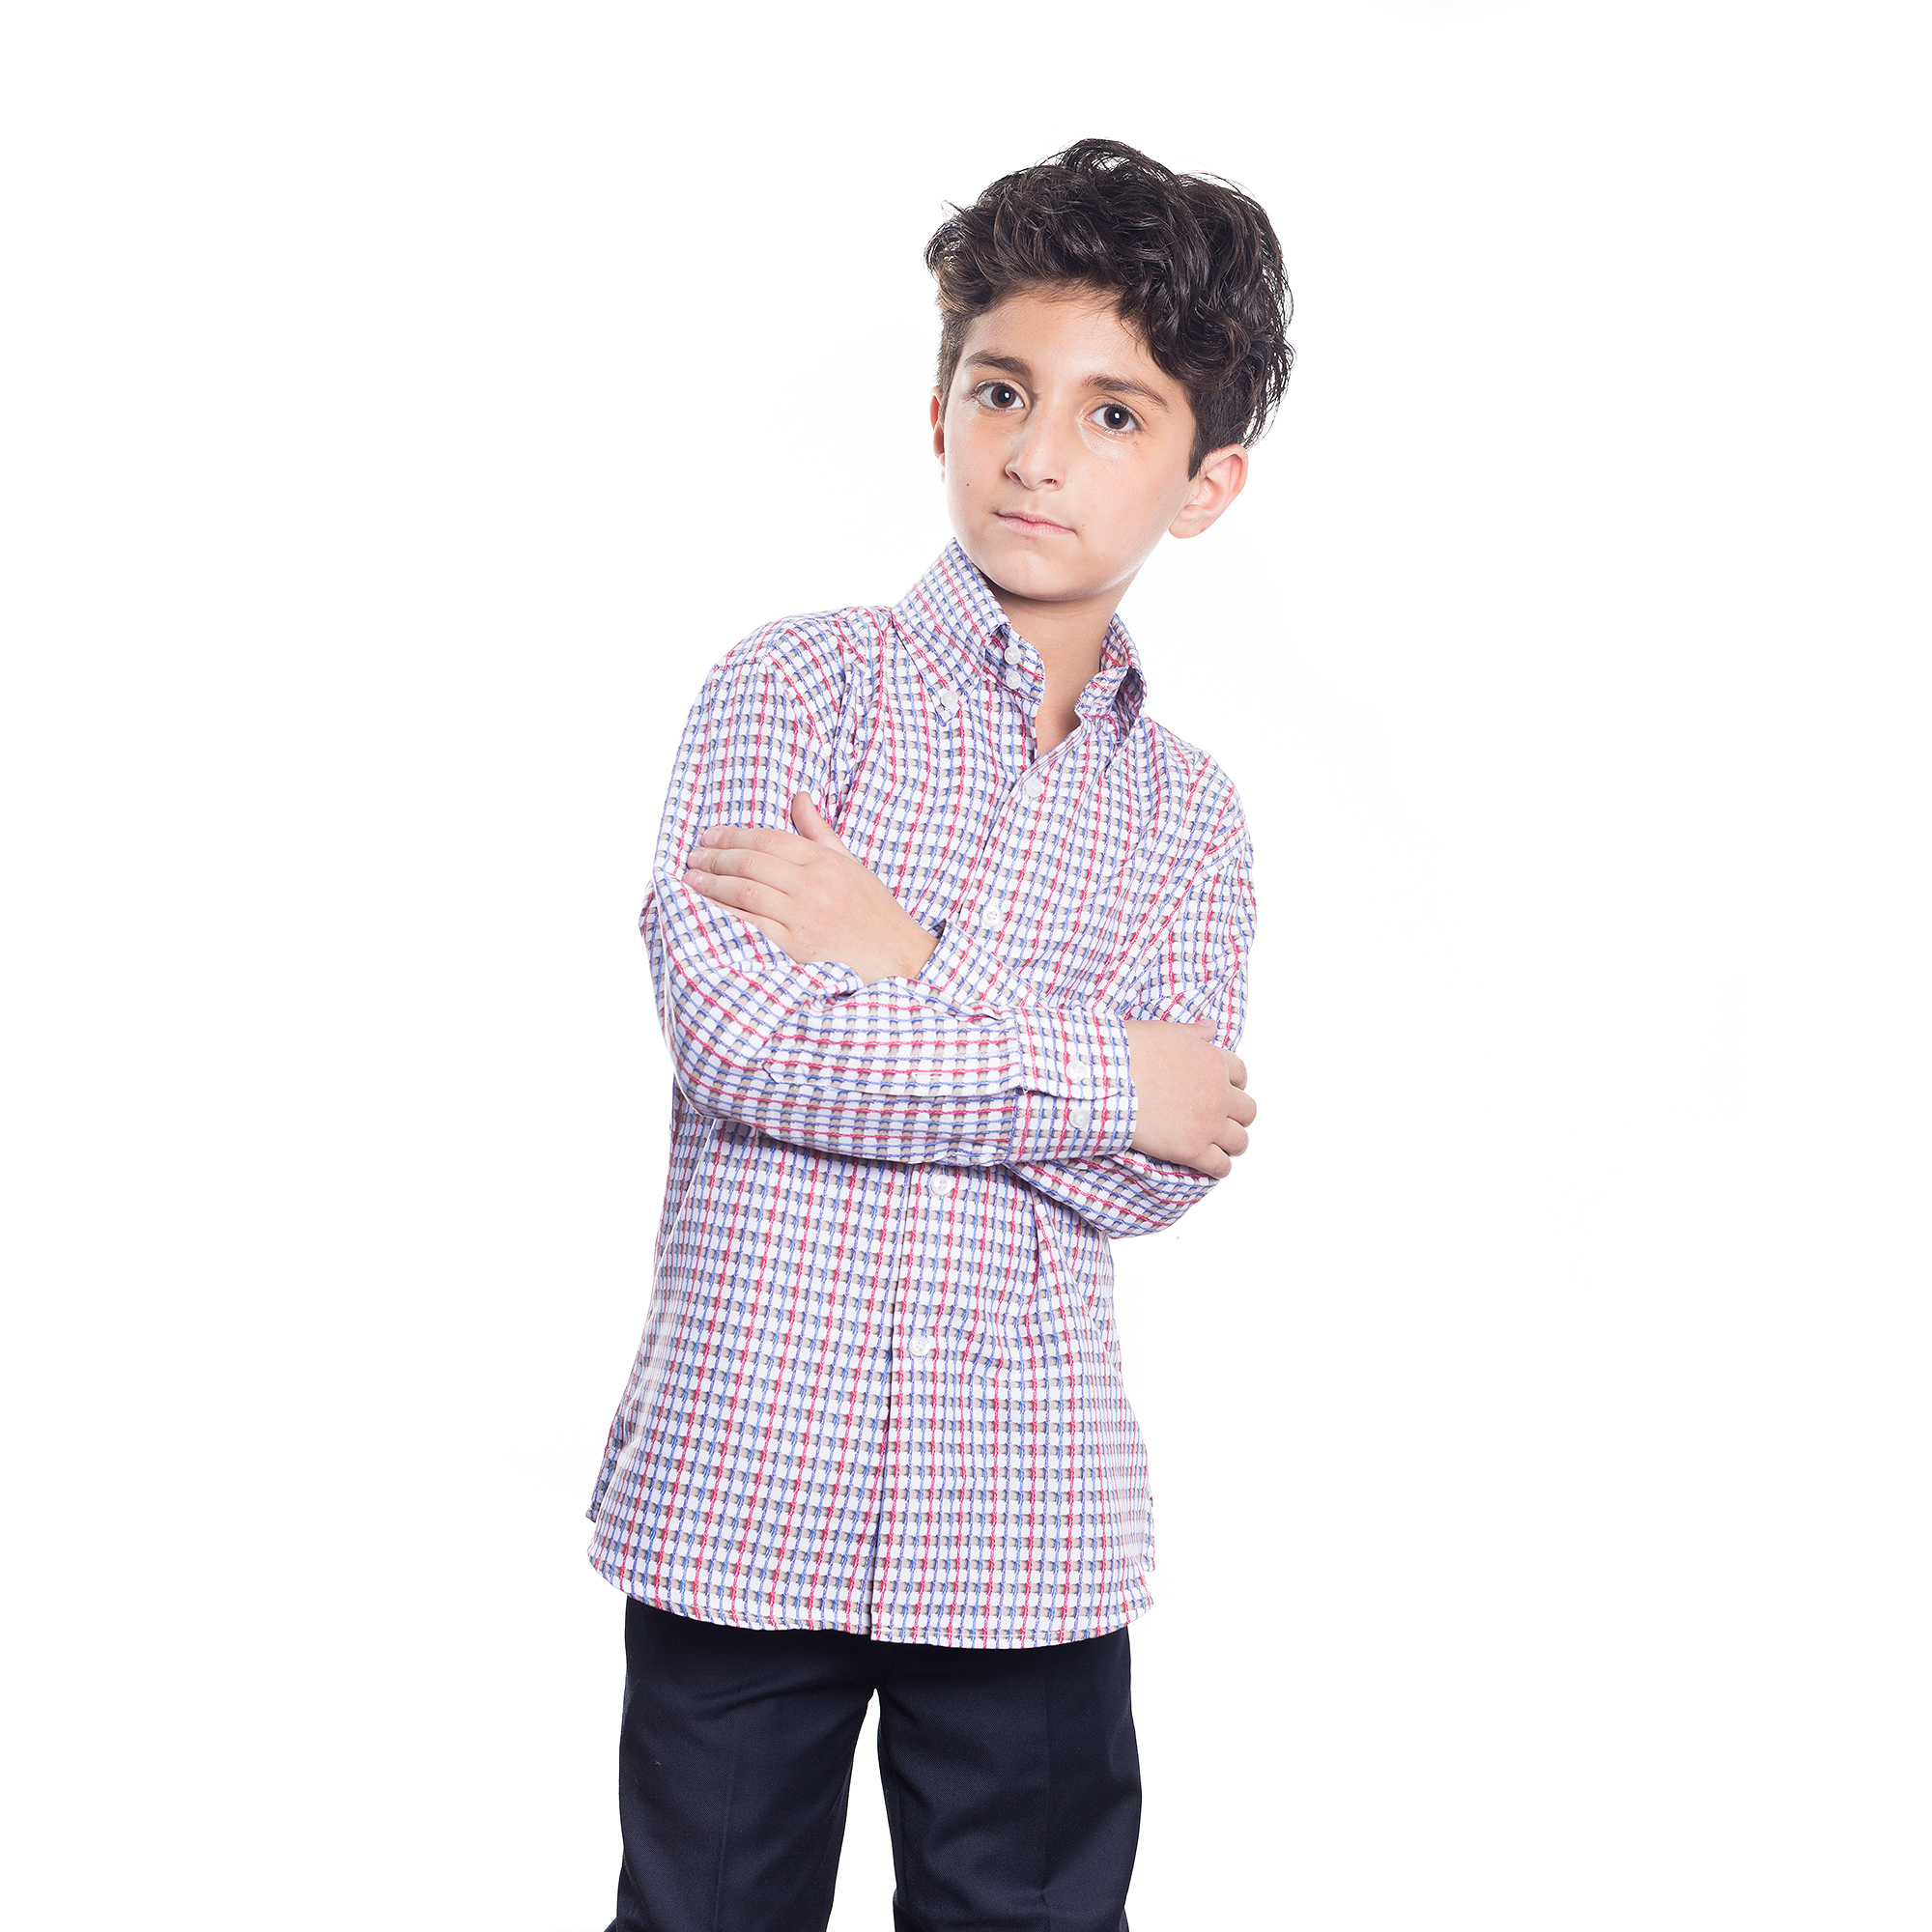 3D Print Design Boys Shirts / Button Down EBSH142B